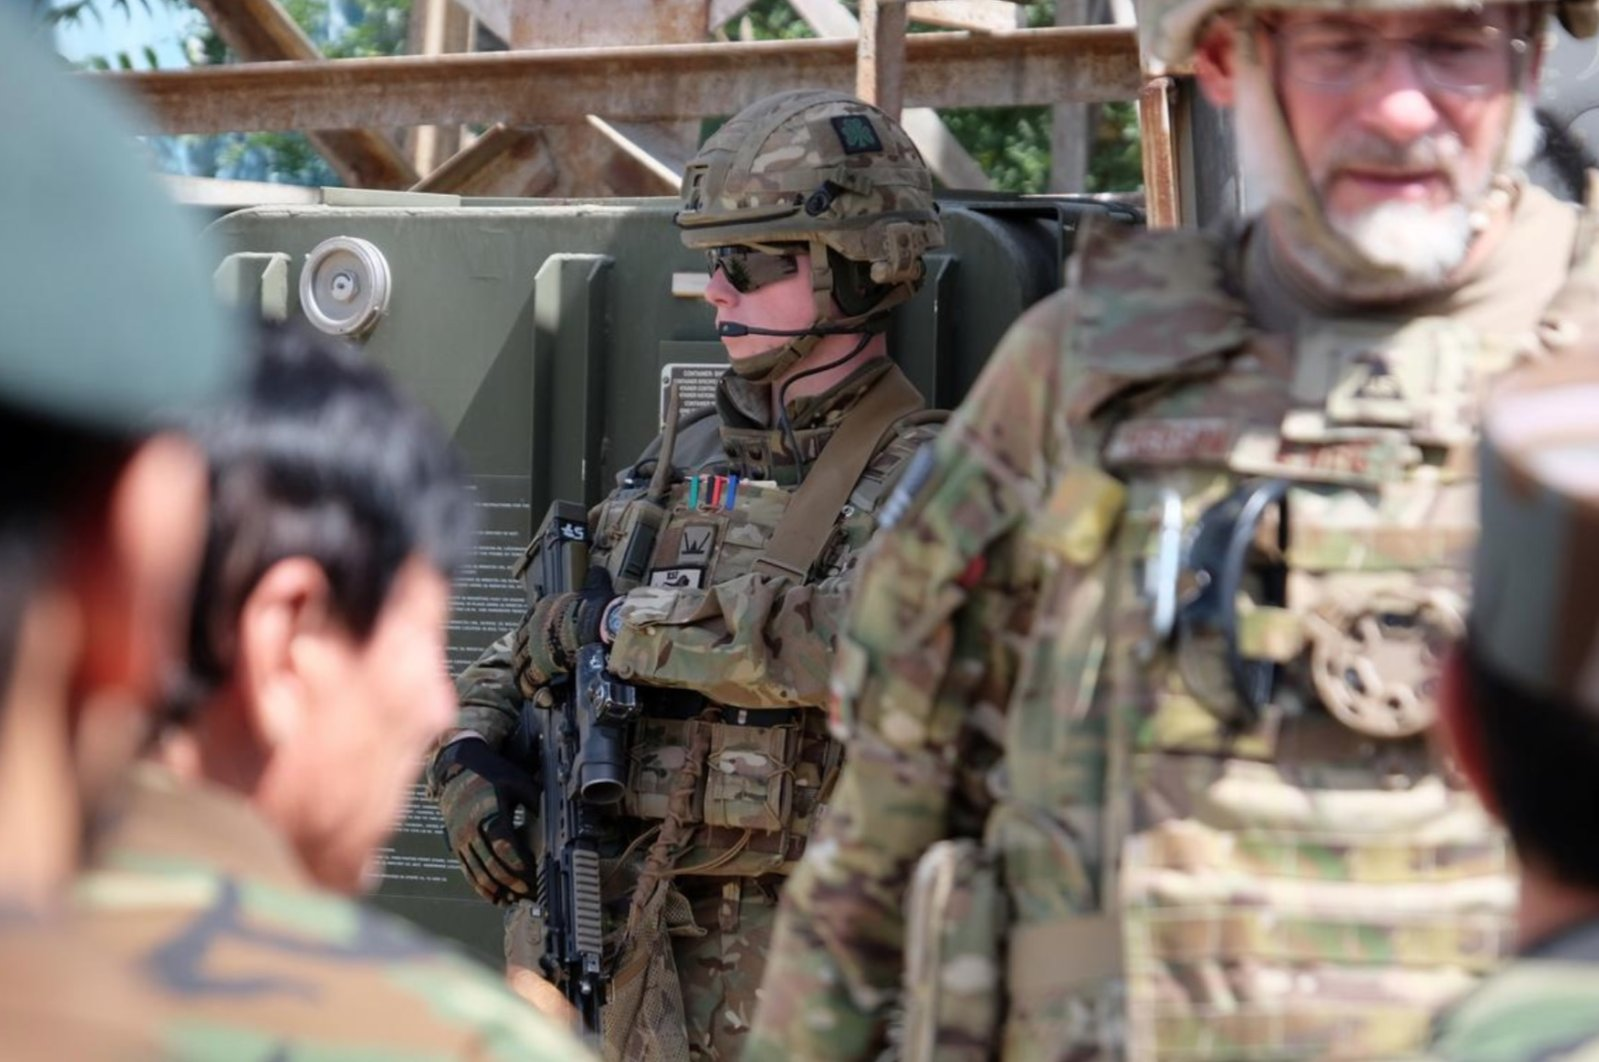 A soldier with the British army's Royal Irish Regiment provides security for a meeting between international military advisers and Afghan officials at a base in Kabul, Afghanistan July 12, 2017. (Reuters Photo)